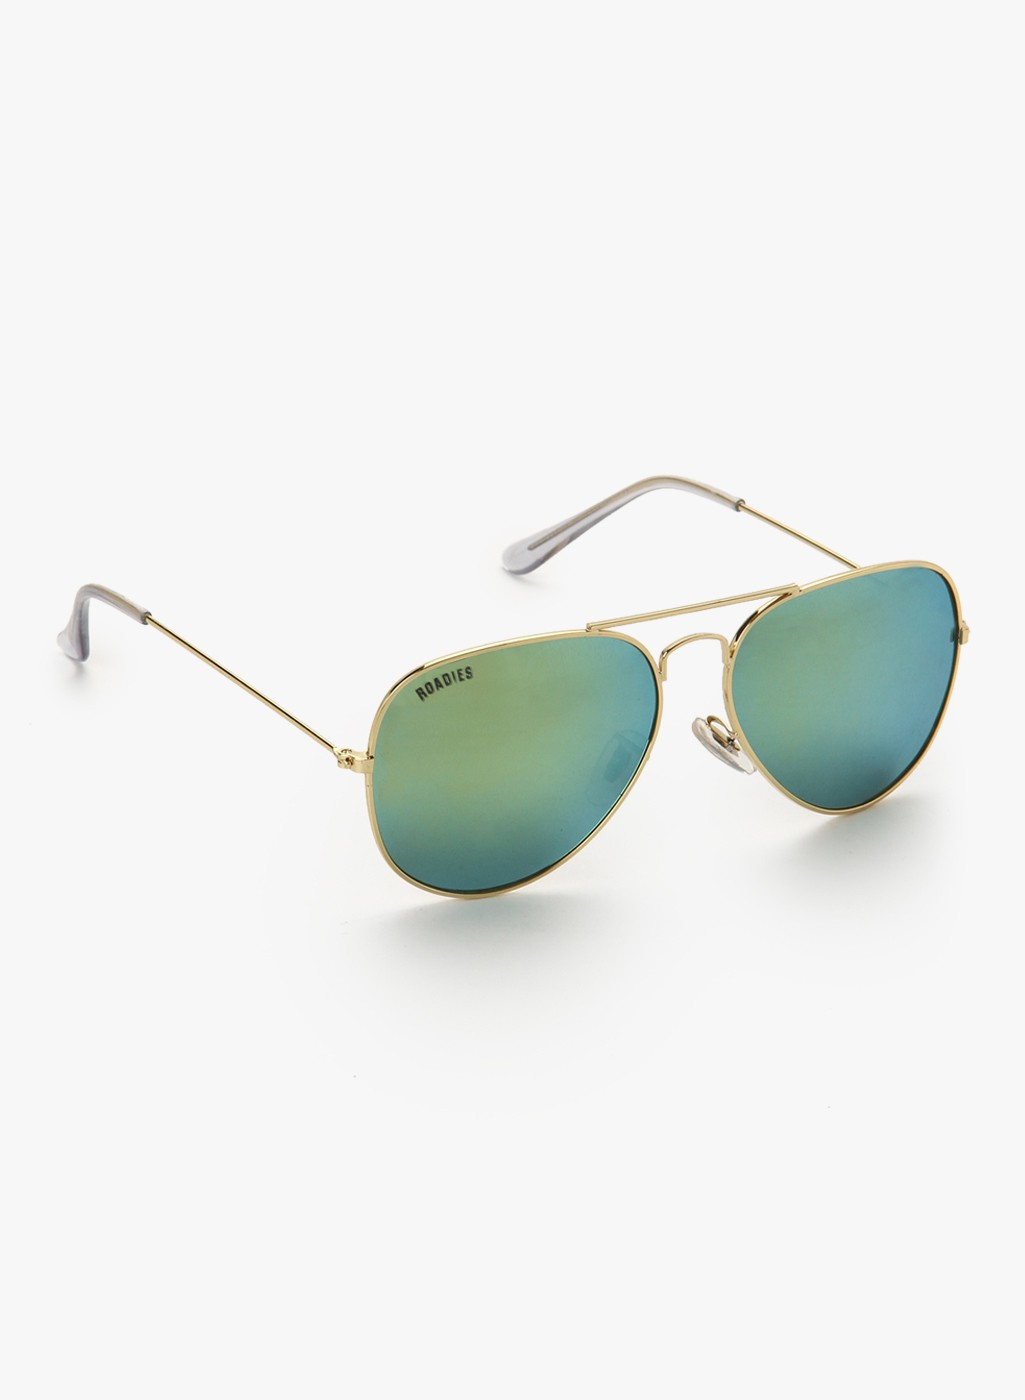 Deals - Delhi - Provogue, MTV... <br> Mens Sunglasses<br> Category - sunglasses<br> Business - Flipkart.com